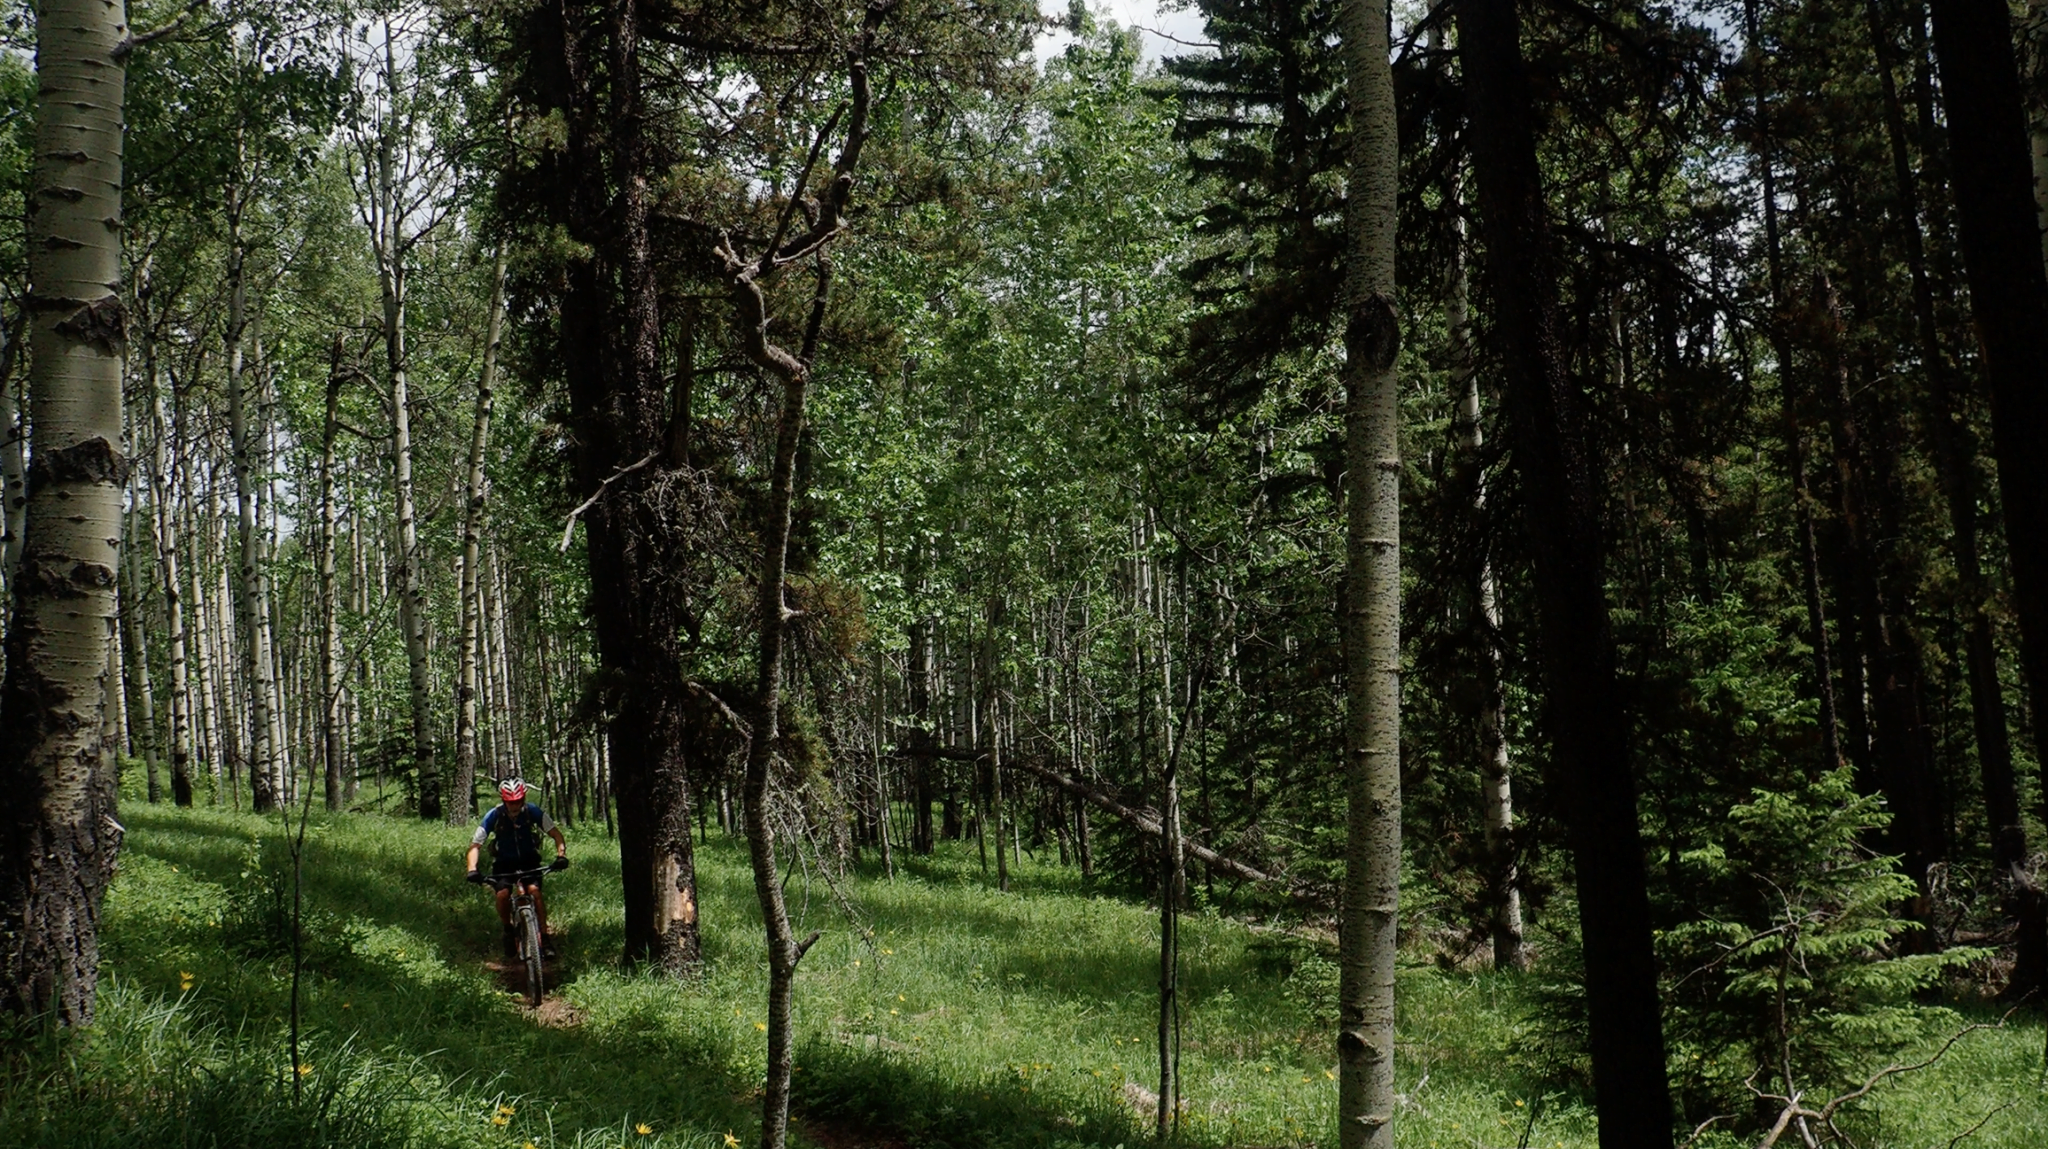 Mountain Biking In Forests In Bragg Creek, Alberta